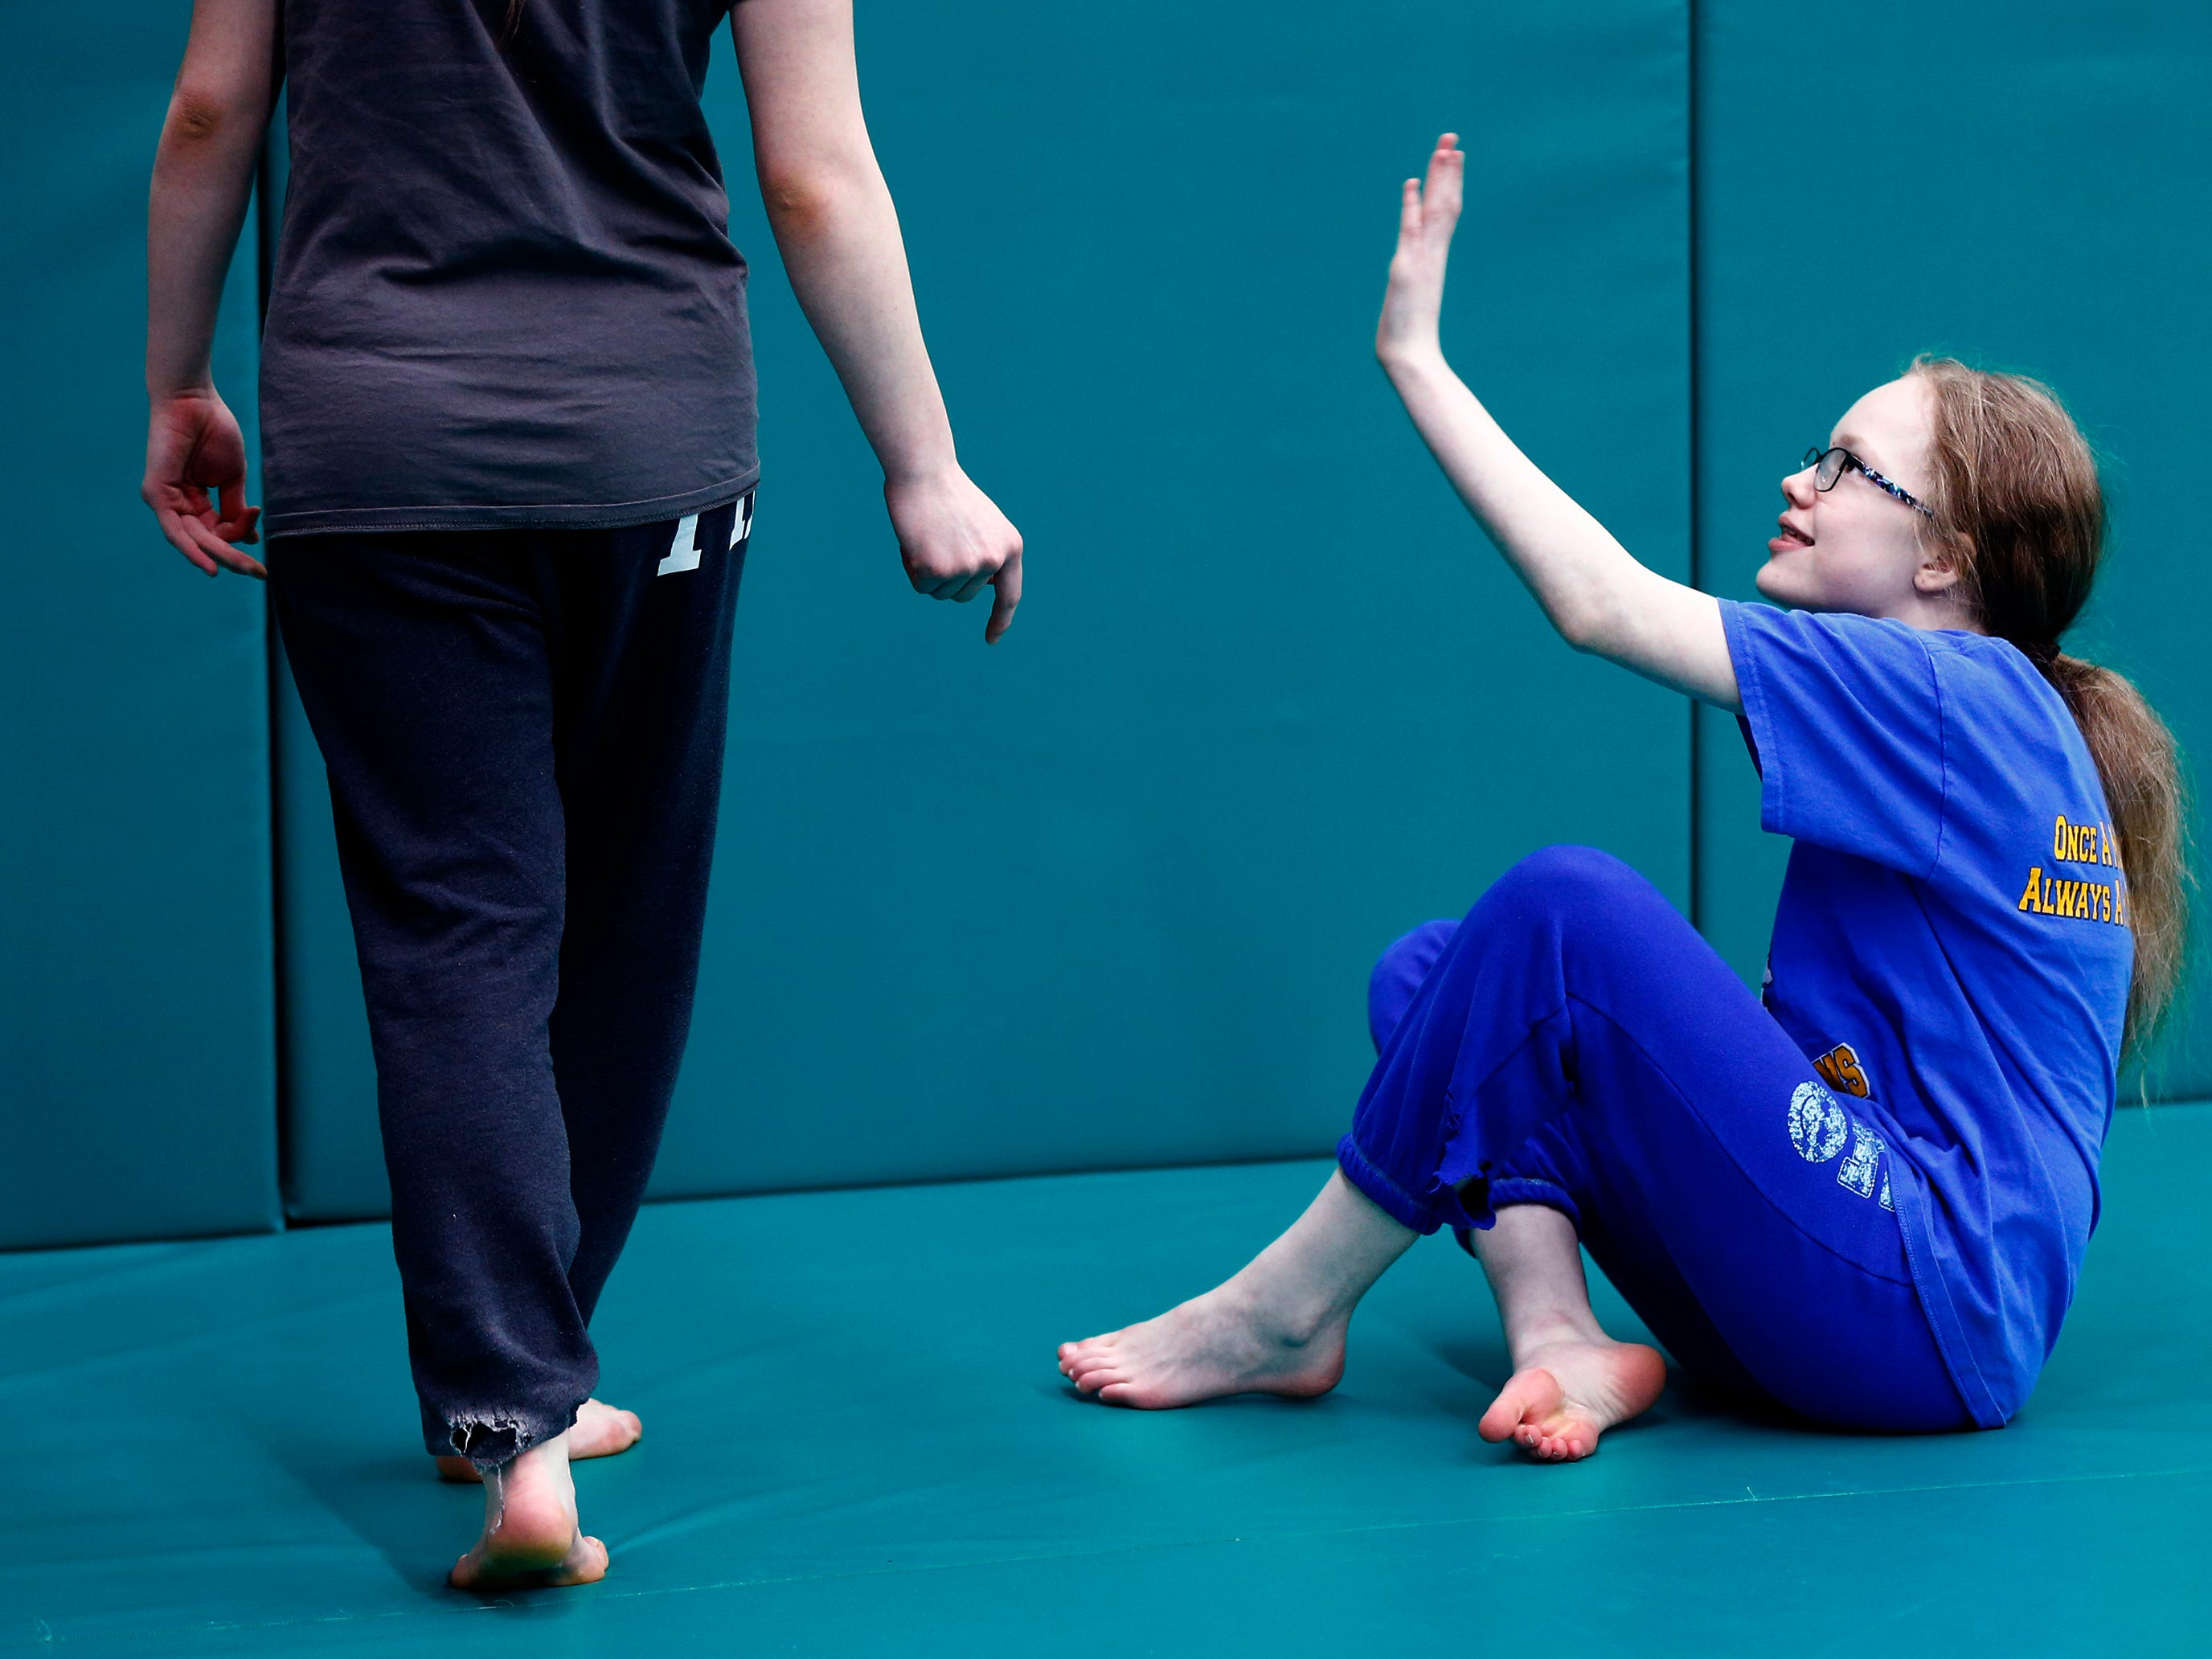 Morgan (left) and Maddy Vele of Mukwonago practice what to do if approached while on the ground during a self defense workshop for first-time students at Gracie Jiu-Jitsu Milwaukee in Wauwatosa on Jan. 5.